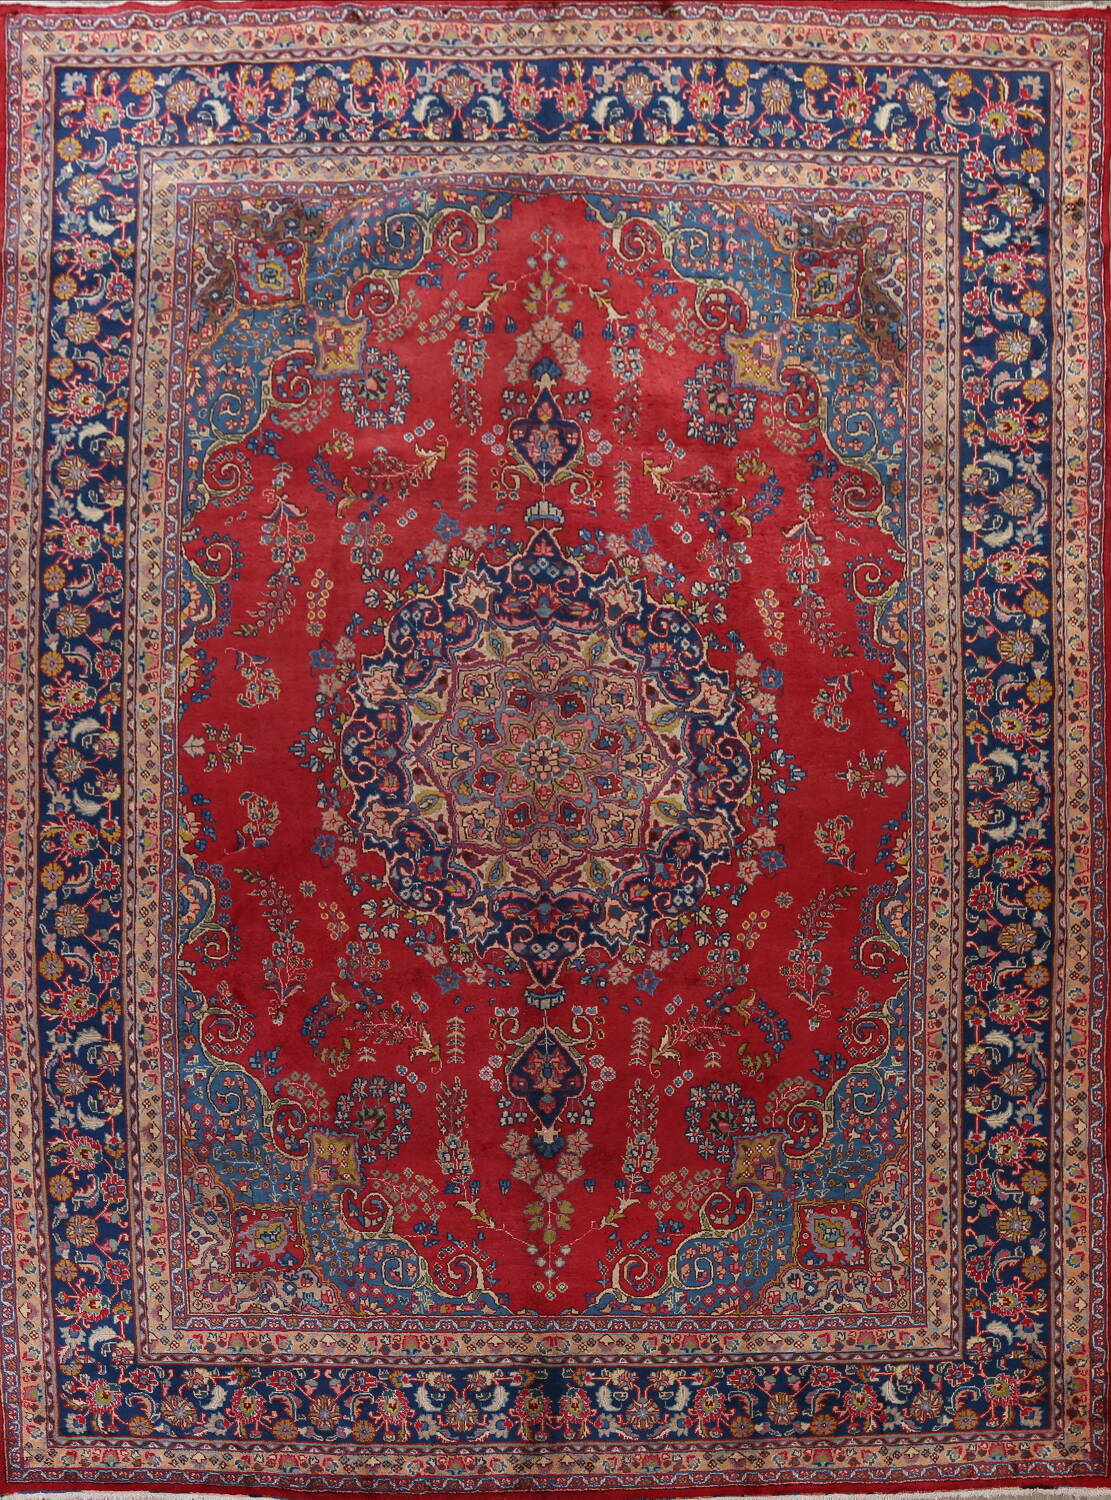 Vintage Floral Red Mashad Persian Area Rug 9x13 image 1